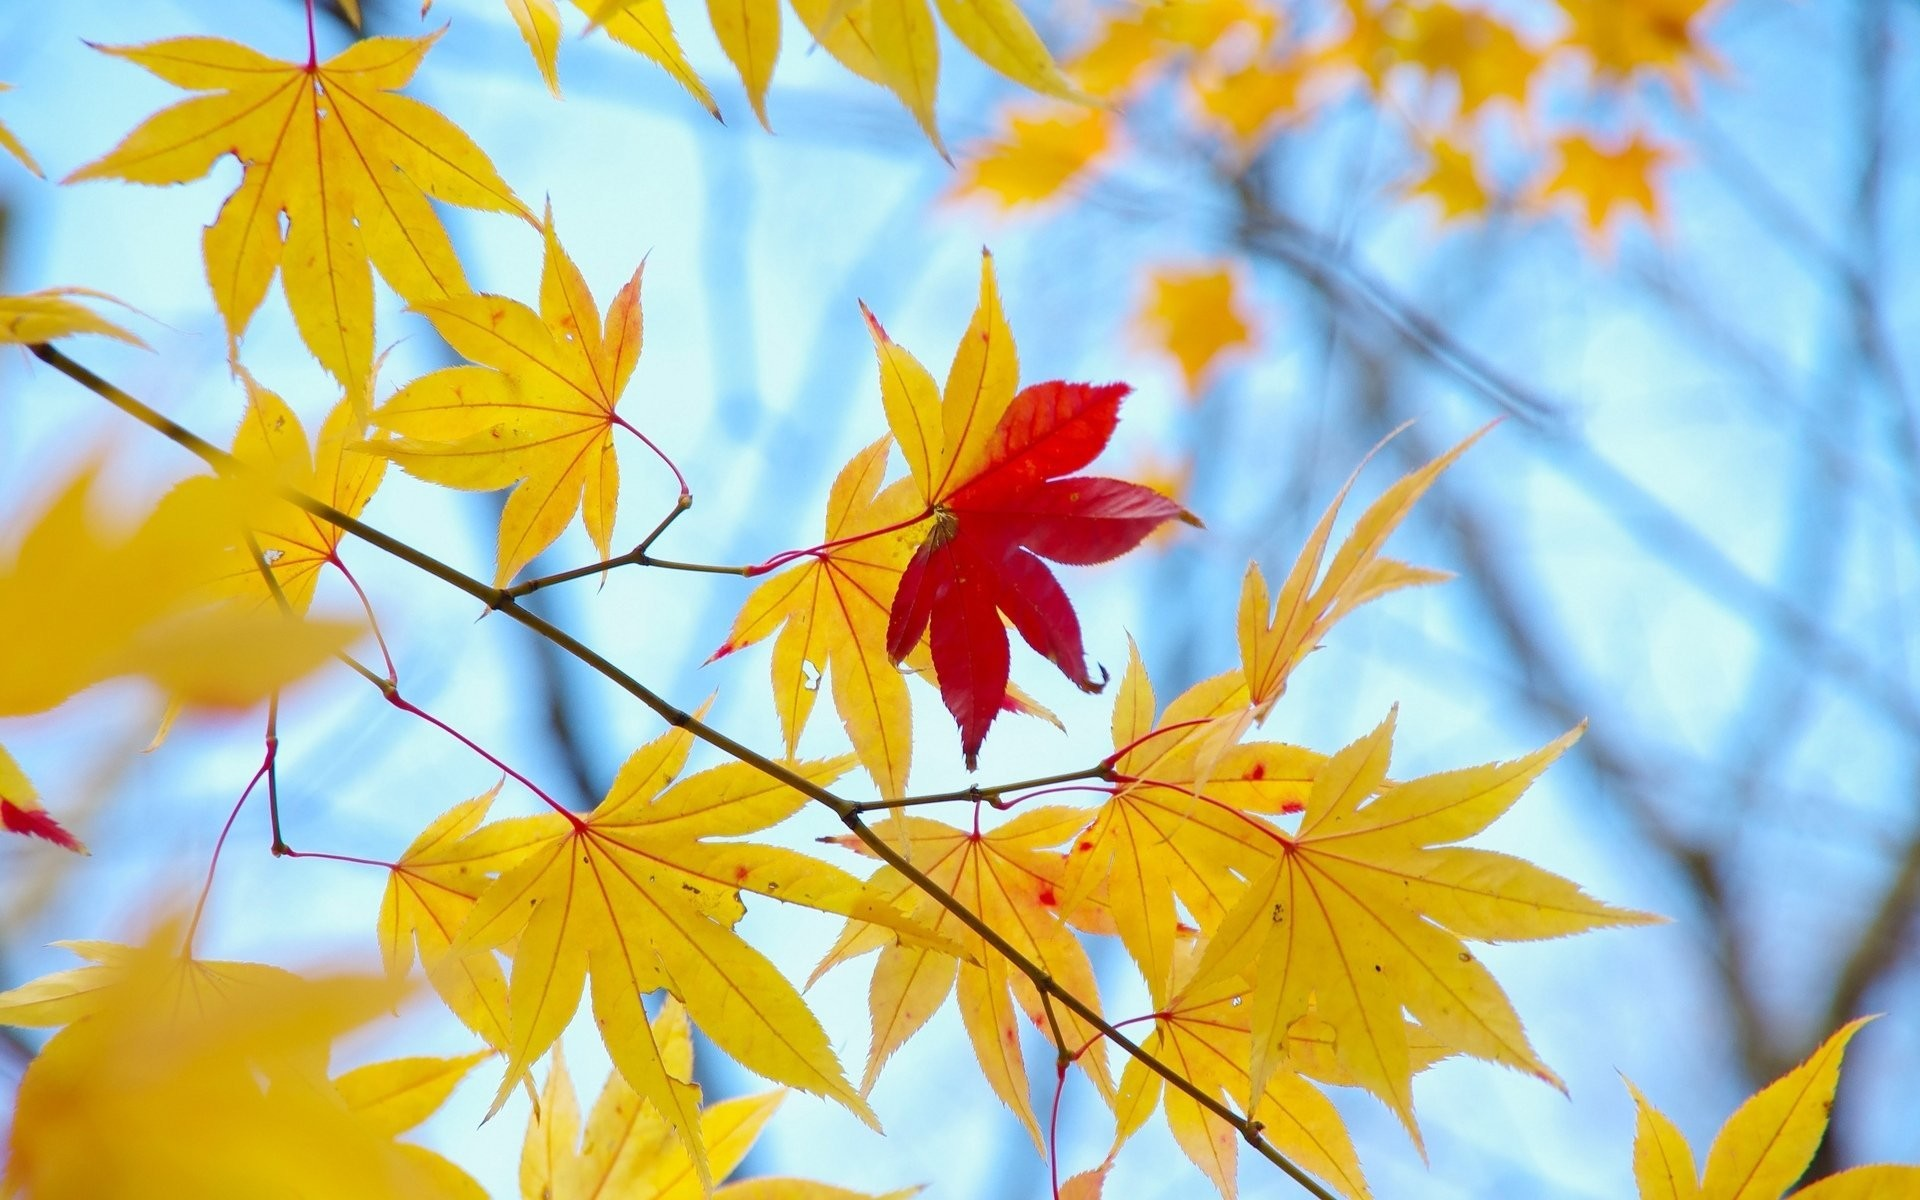 close up leaves leaves autumn yellow red tree tree leaves macro background wallpaper  widescreen full screen